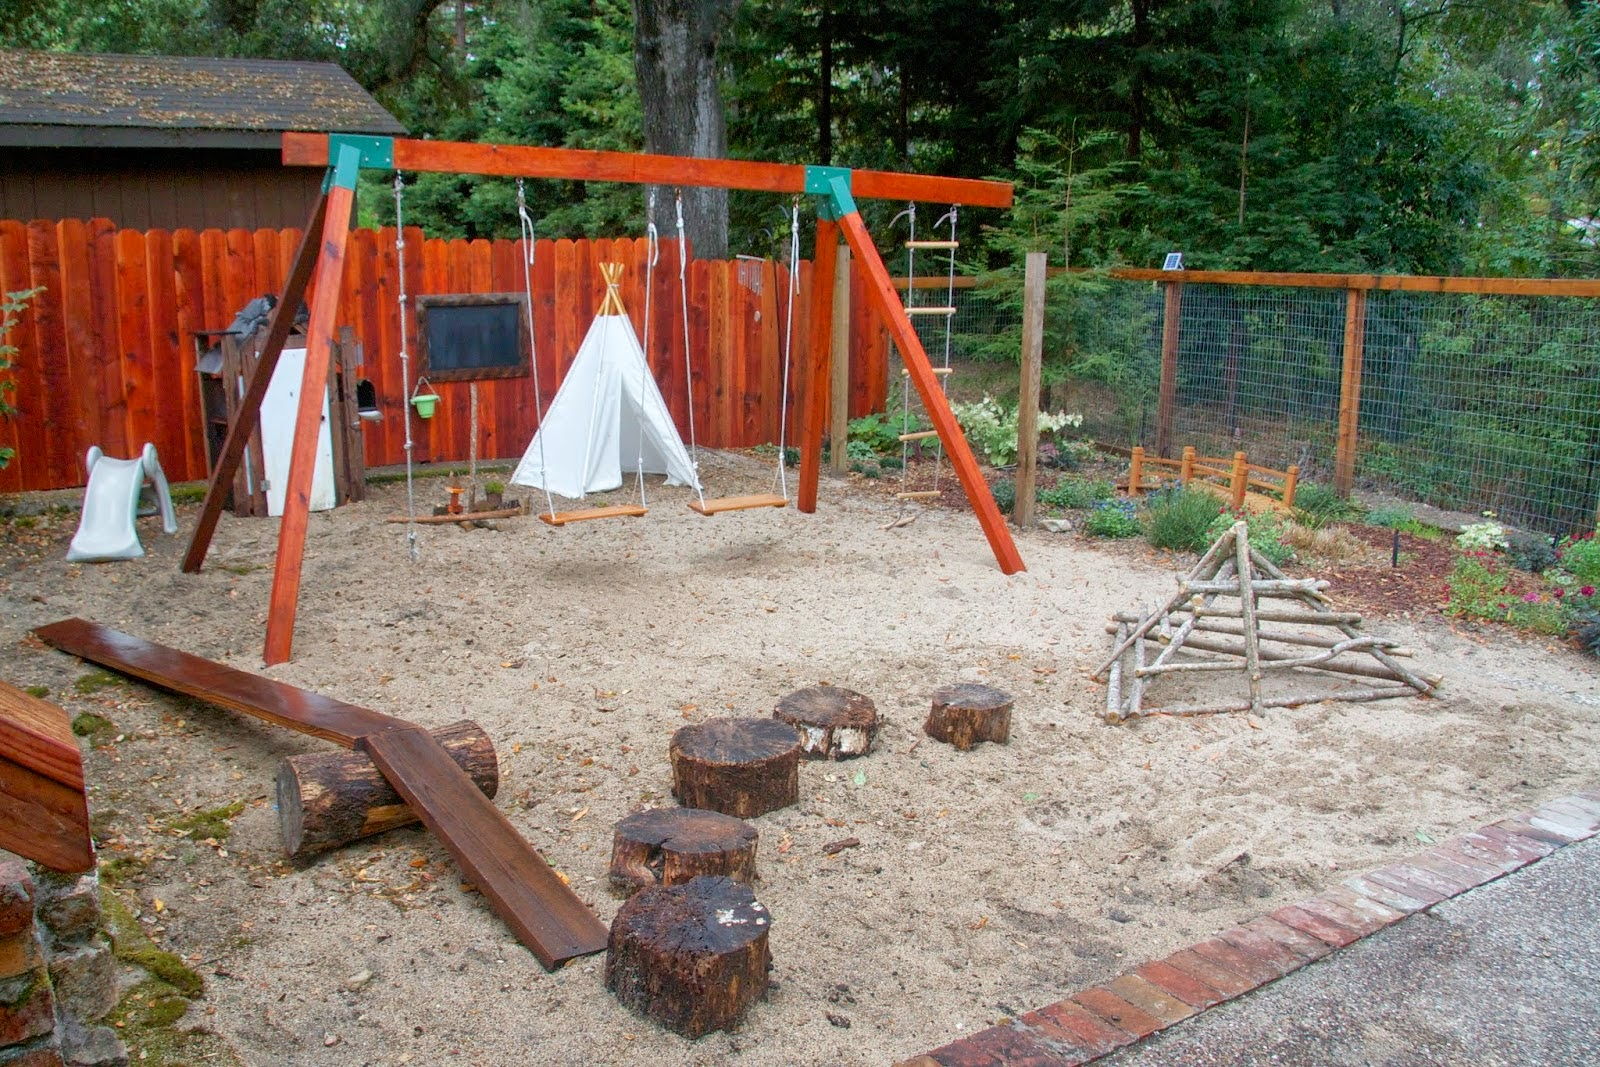 Hayley at Leaving the Ivory Tower built a Natural Materials Playground ...